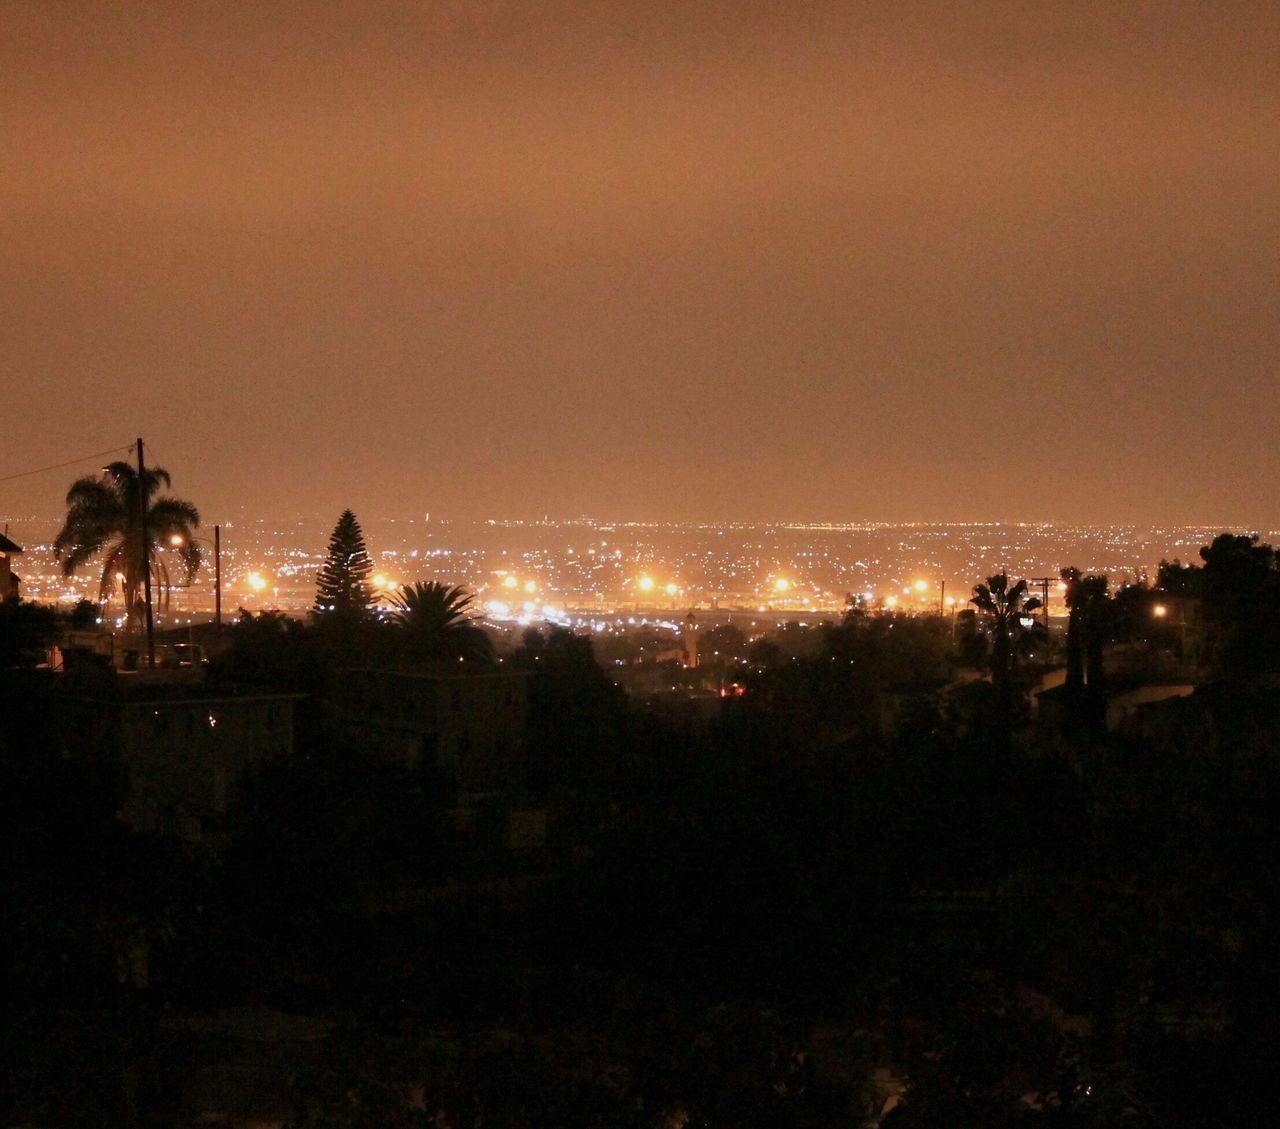 Contrast Night Silhouette Outdoors Sky Tree Nightphotography Citylife Losangeles Illuminated City Naturalcolor  Lights At Night Palm Tree Hazy  Onthehorizon Inthedistance Freshness Beauty In Nature Adapted To The City Orange Sky The City Light EyeEmNewHere